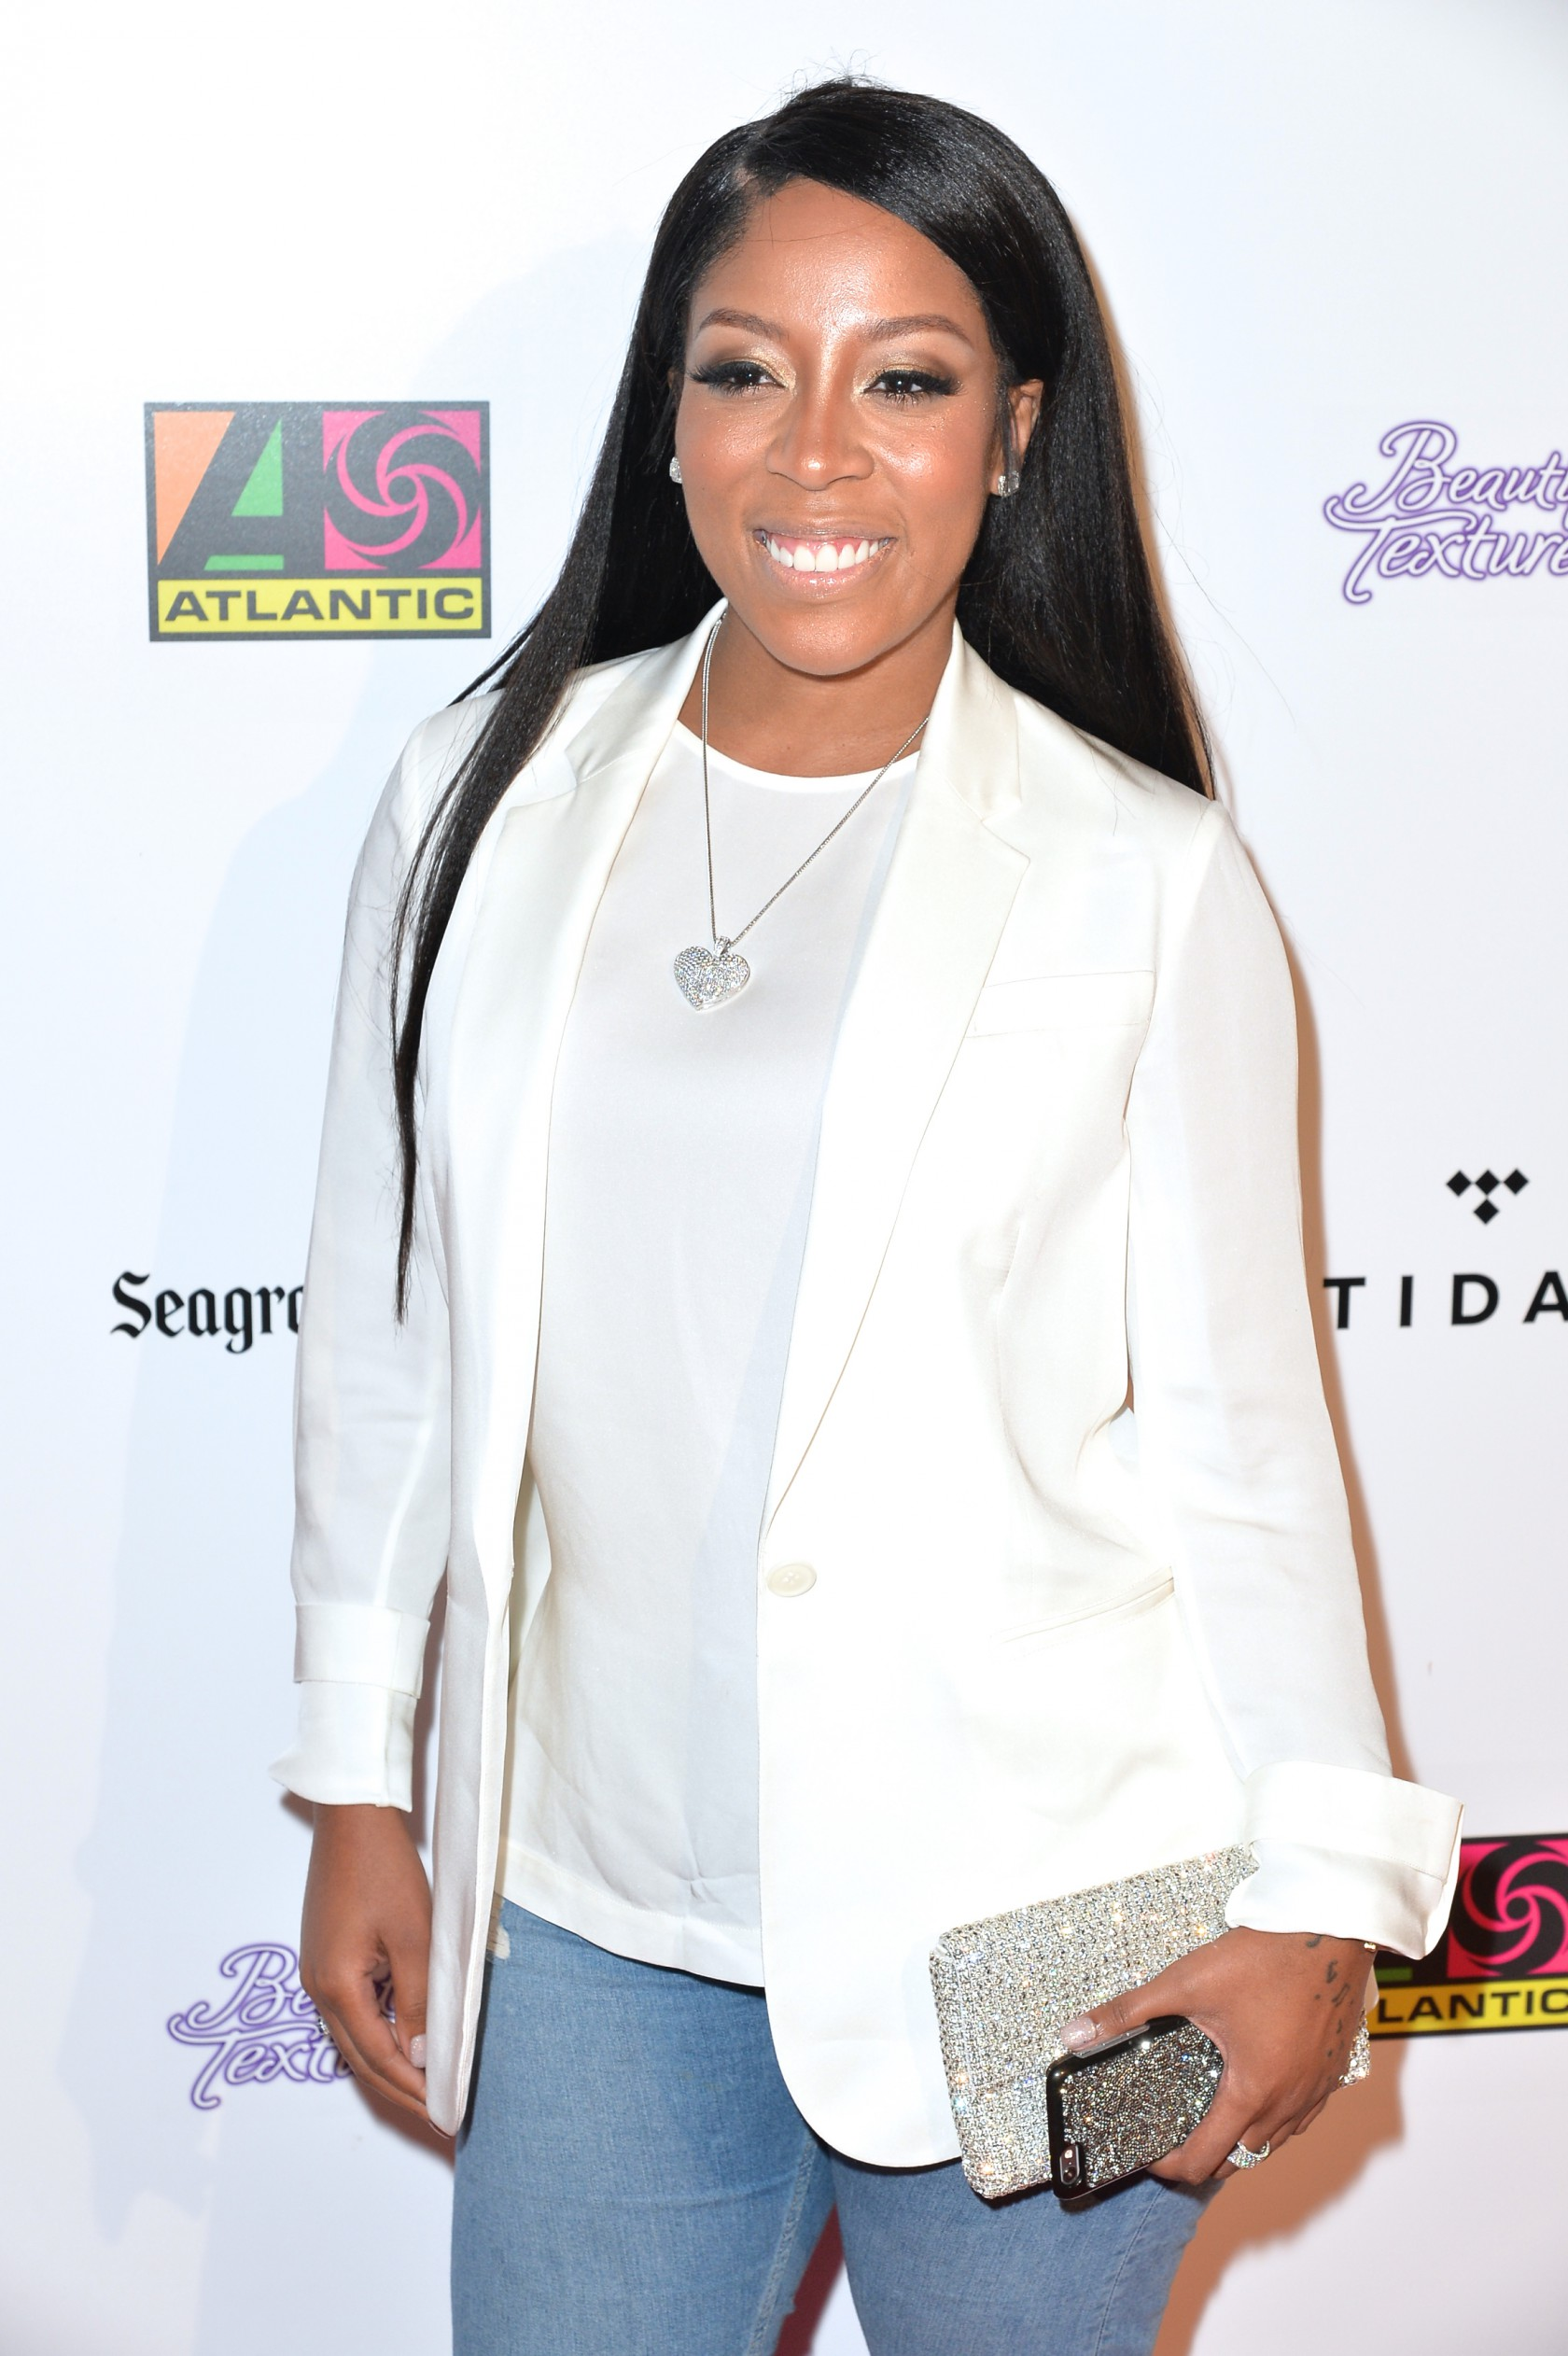 Tidal Presents The Atlantic Records 2015 BET Awards After Party